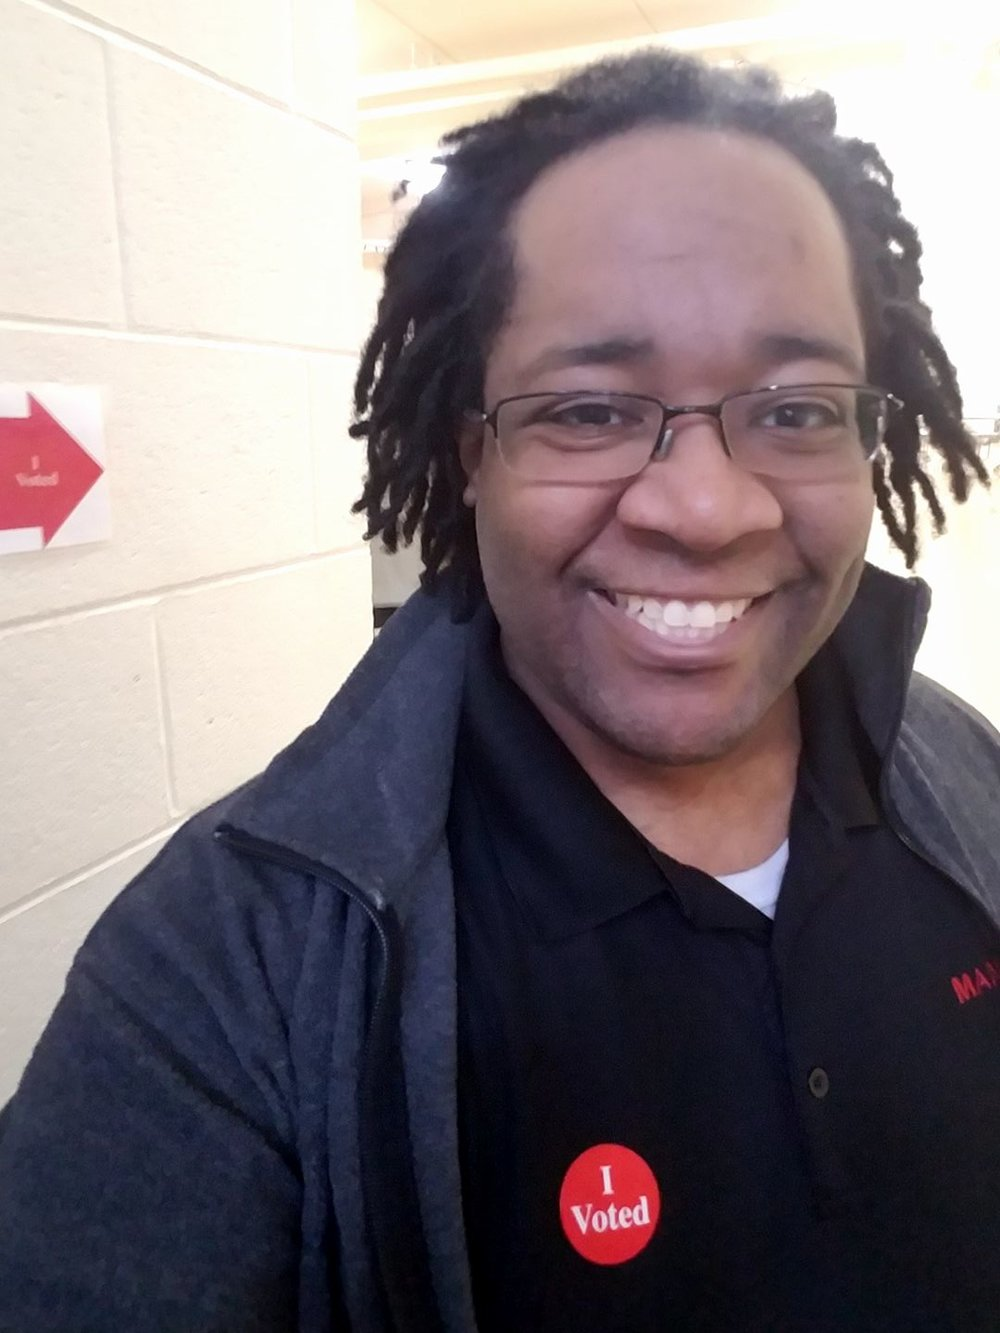 I voted before work today - I was #26 at my polling place.